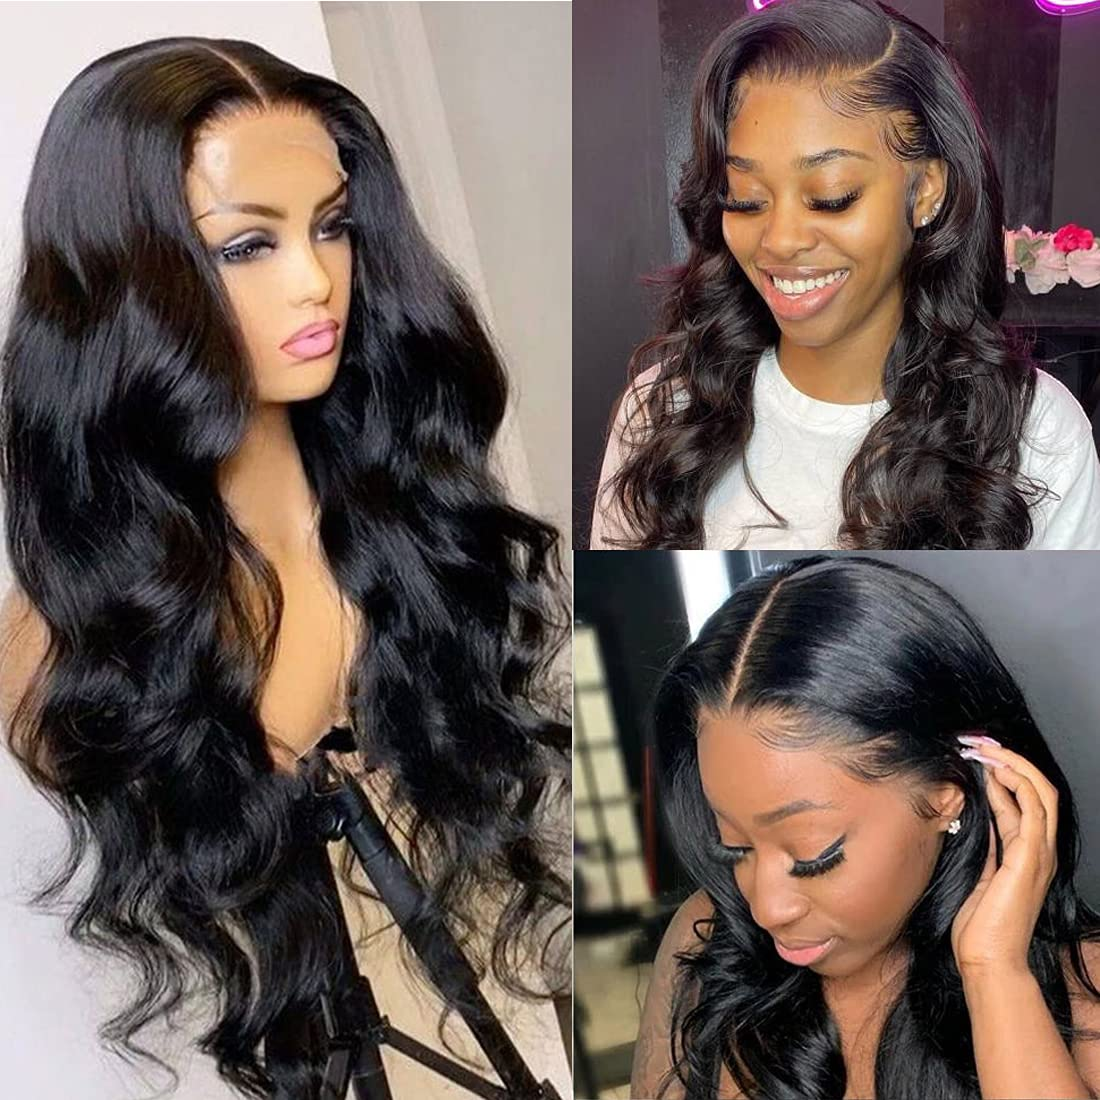 NAMOYA Lace Max Ranking TOP13 66% OFF Front Wigs Human Hair Inch Wave 24 W Body